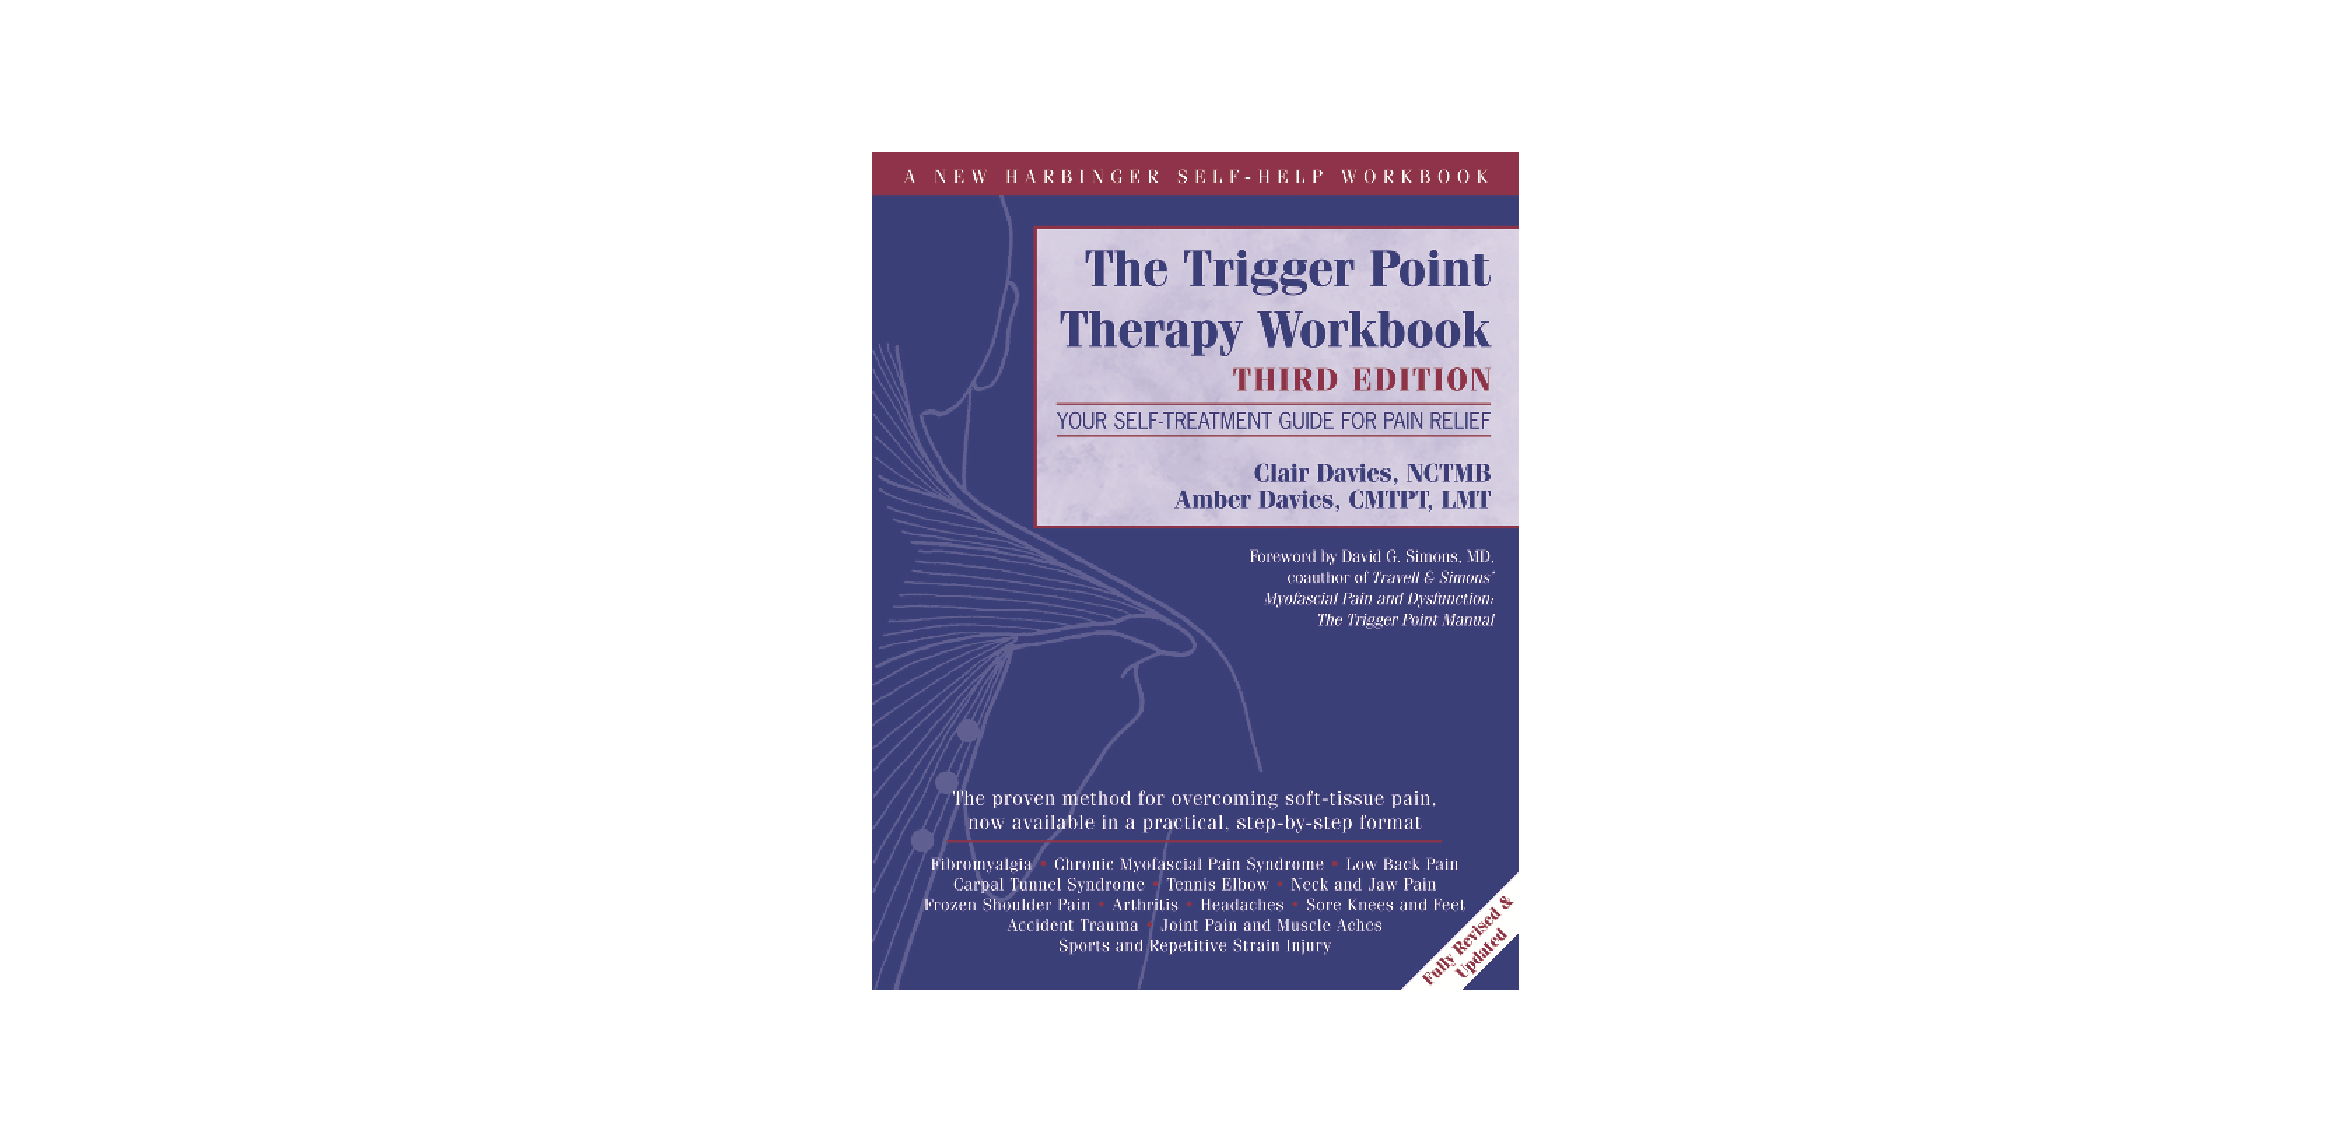 Massage for Therapists: A guide to soft tissue therapy, Third edition